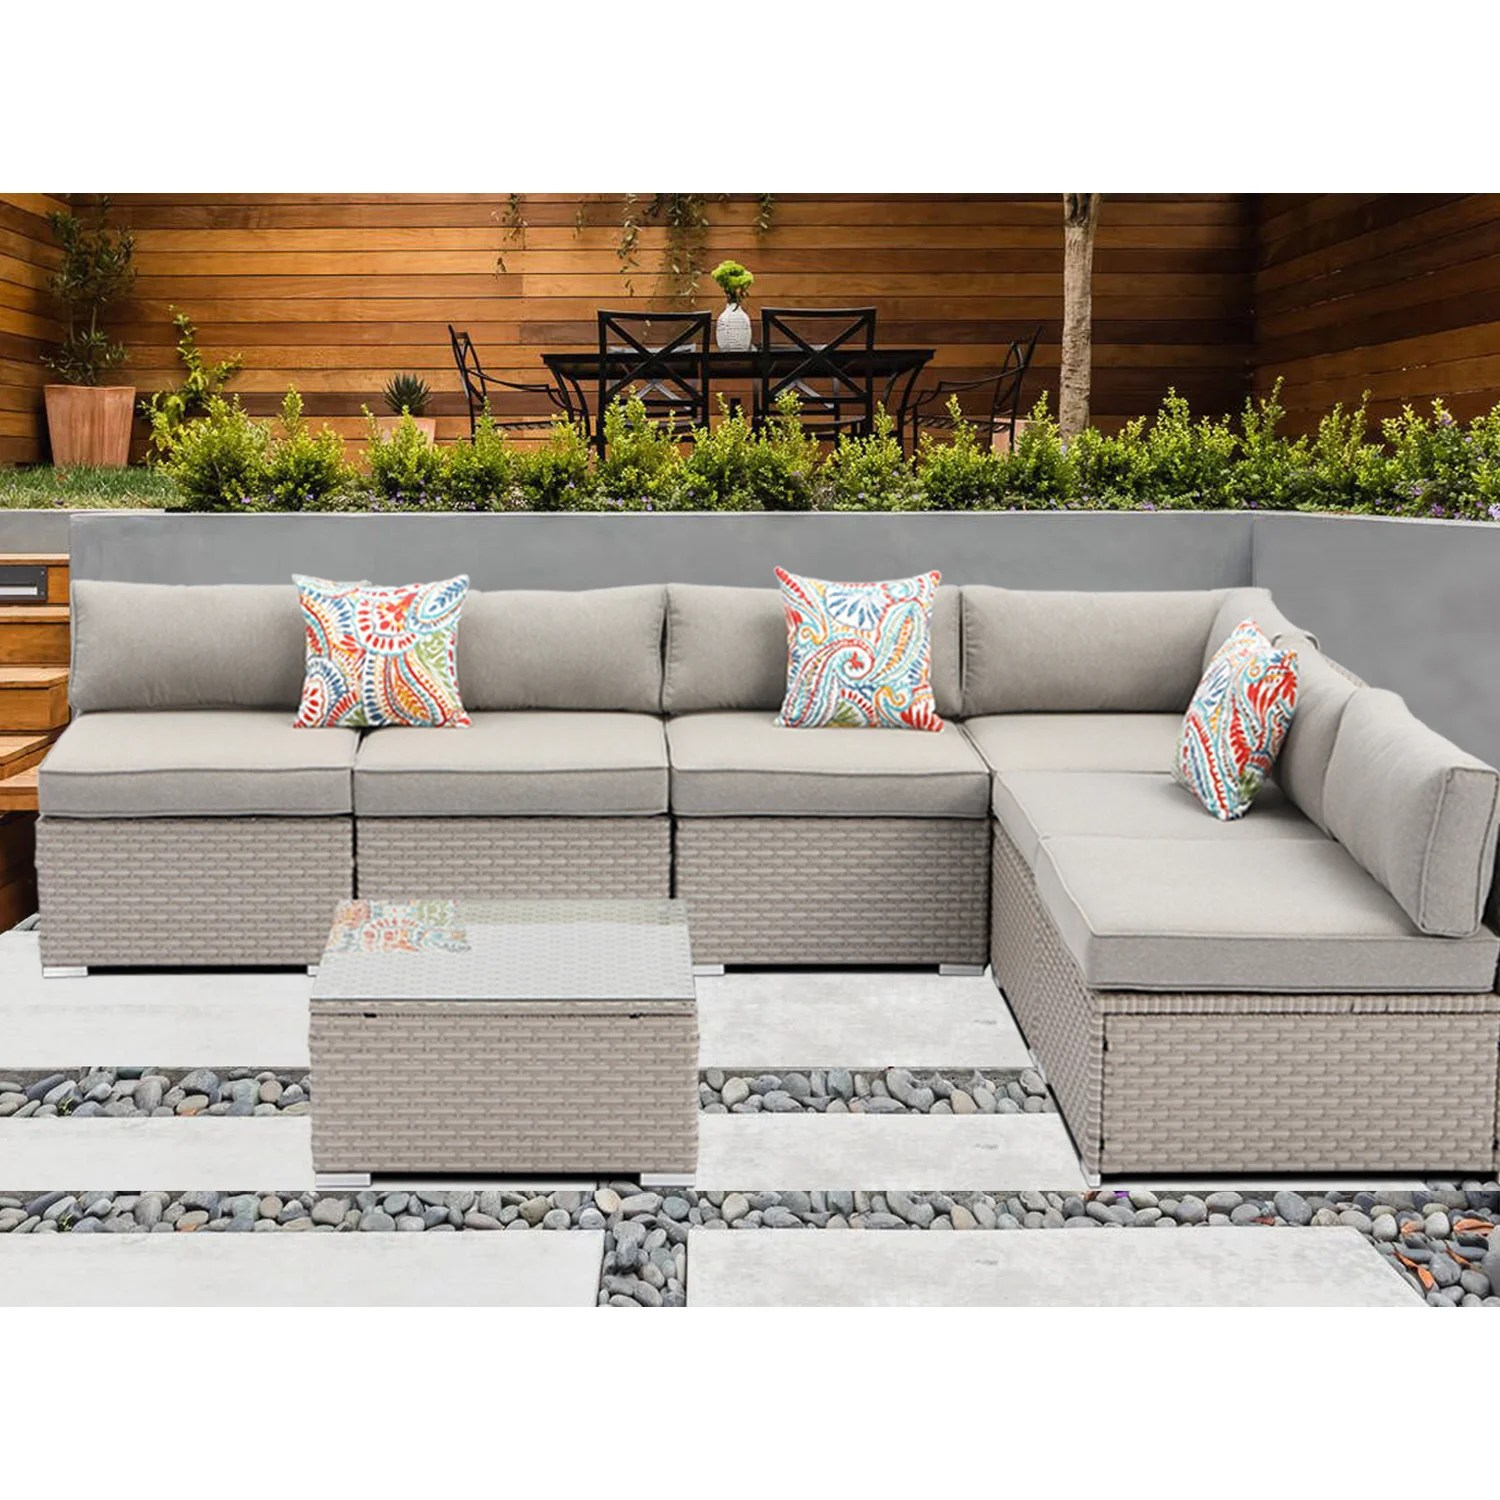 outdoor sectional 7 piece wicker sofa in warm grey w 6 pillows in psychedelic colours elegant patio furniture chair and table set for backyard